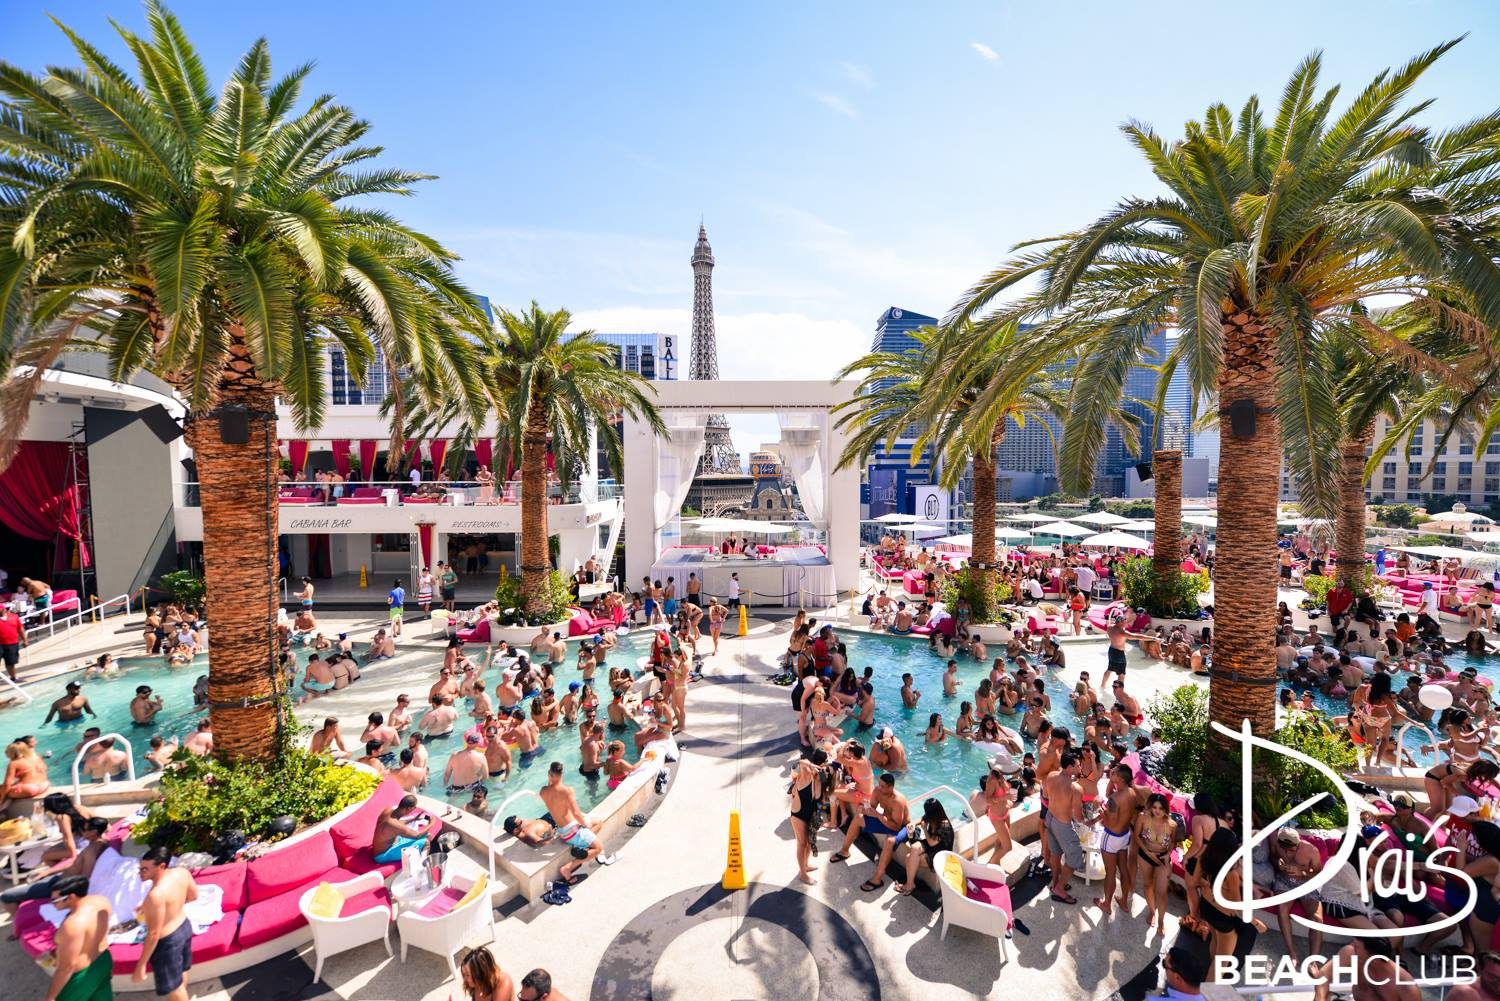 drais beach club, drais beach, drais beach club guest list, drais beach club promoter, drais beach guest list, drais beach club bottle service